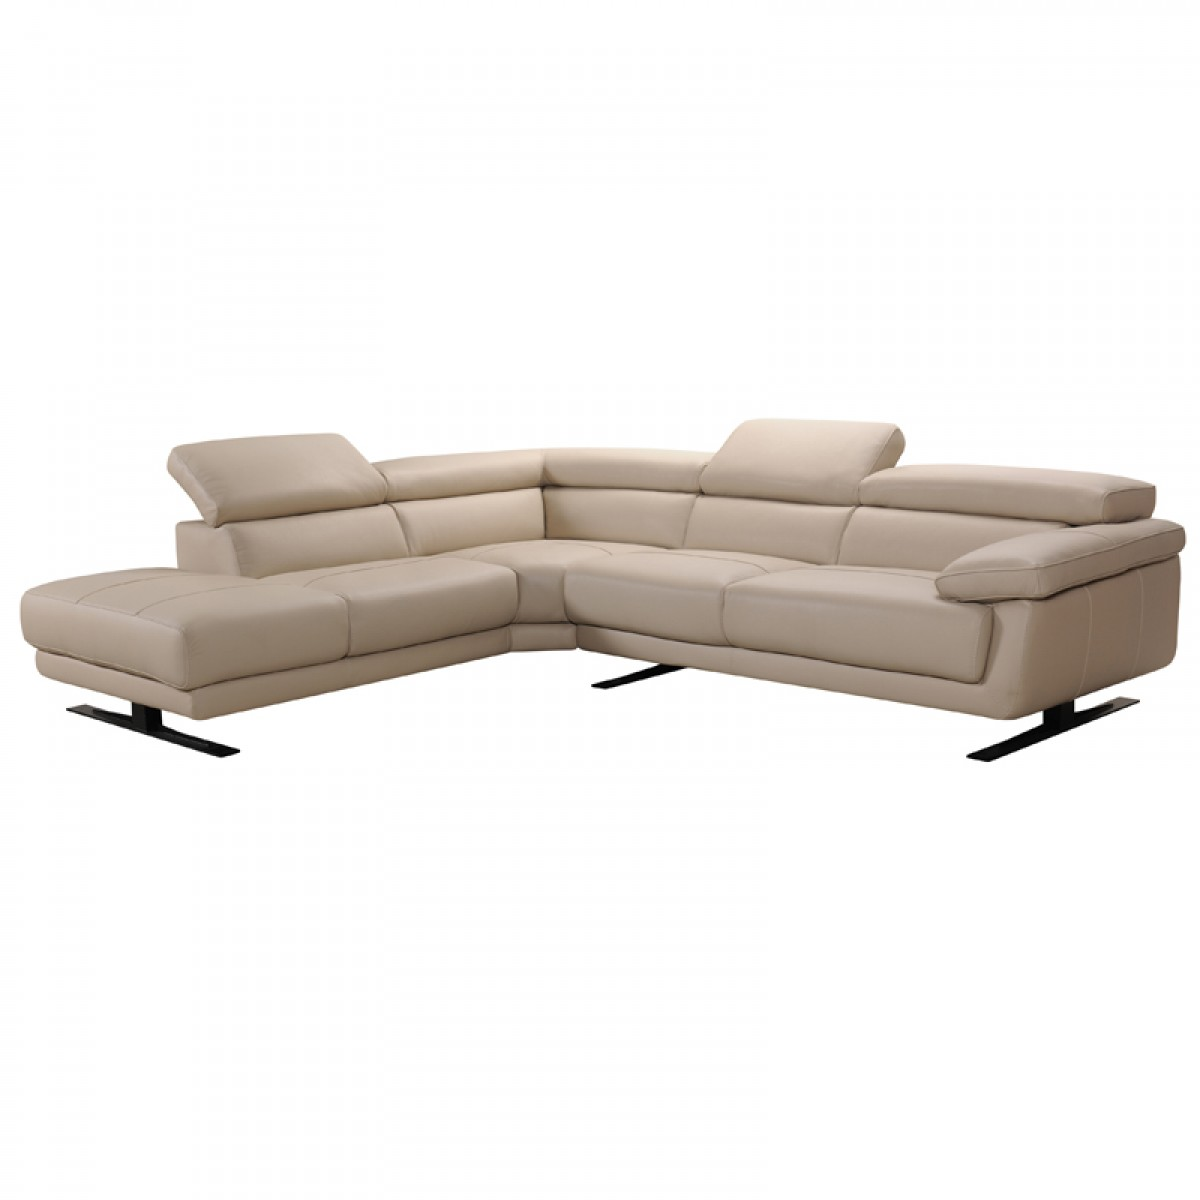 Divani casa gypsum modern taupe leather sectional sofa for Brighton taupe 3 piece chaise and sofa set